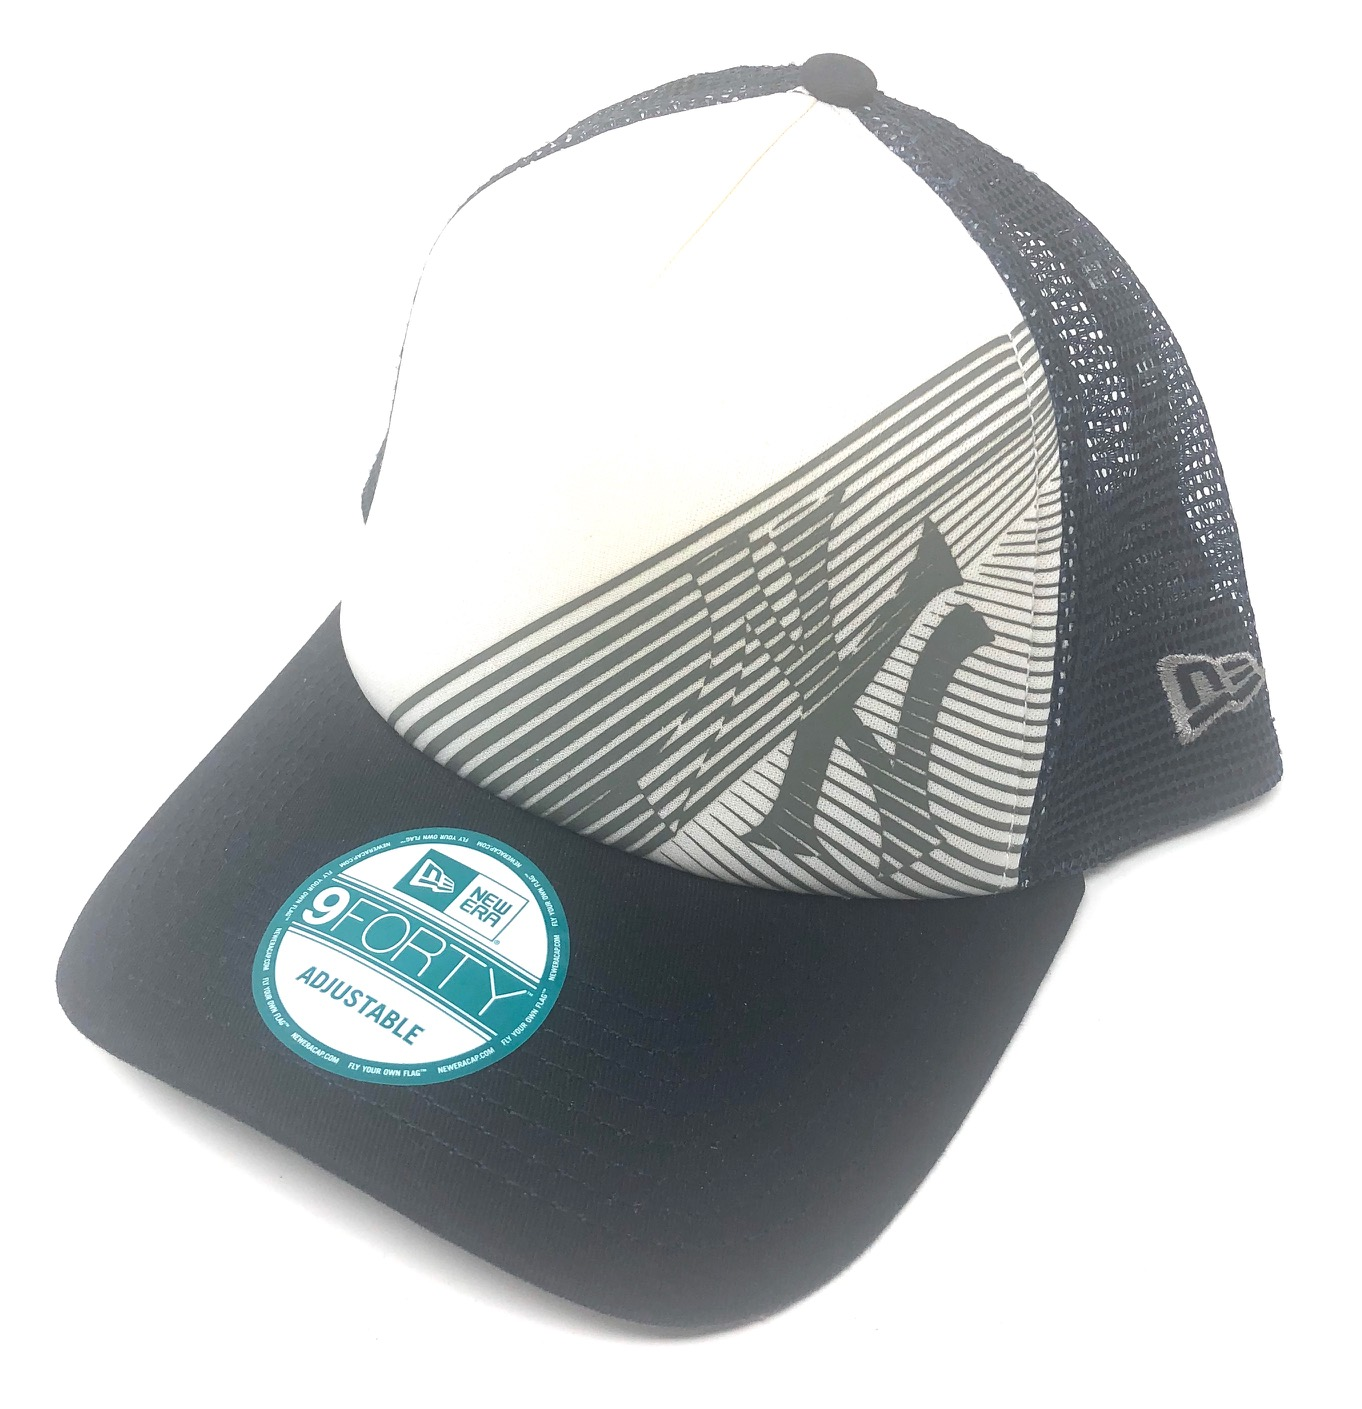 Oakley-Men-039-s-New-York-Yankees-New-Era-9FORTY-MLB-Baseball-Trucker-Hat-Cap miniature 13